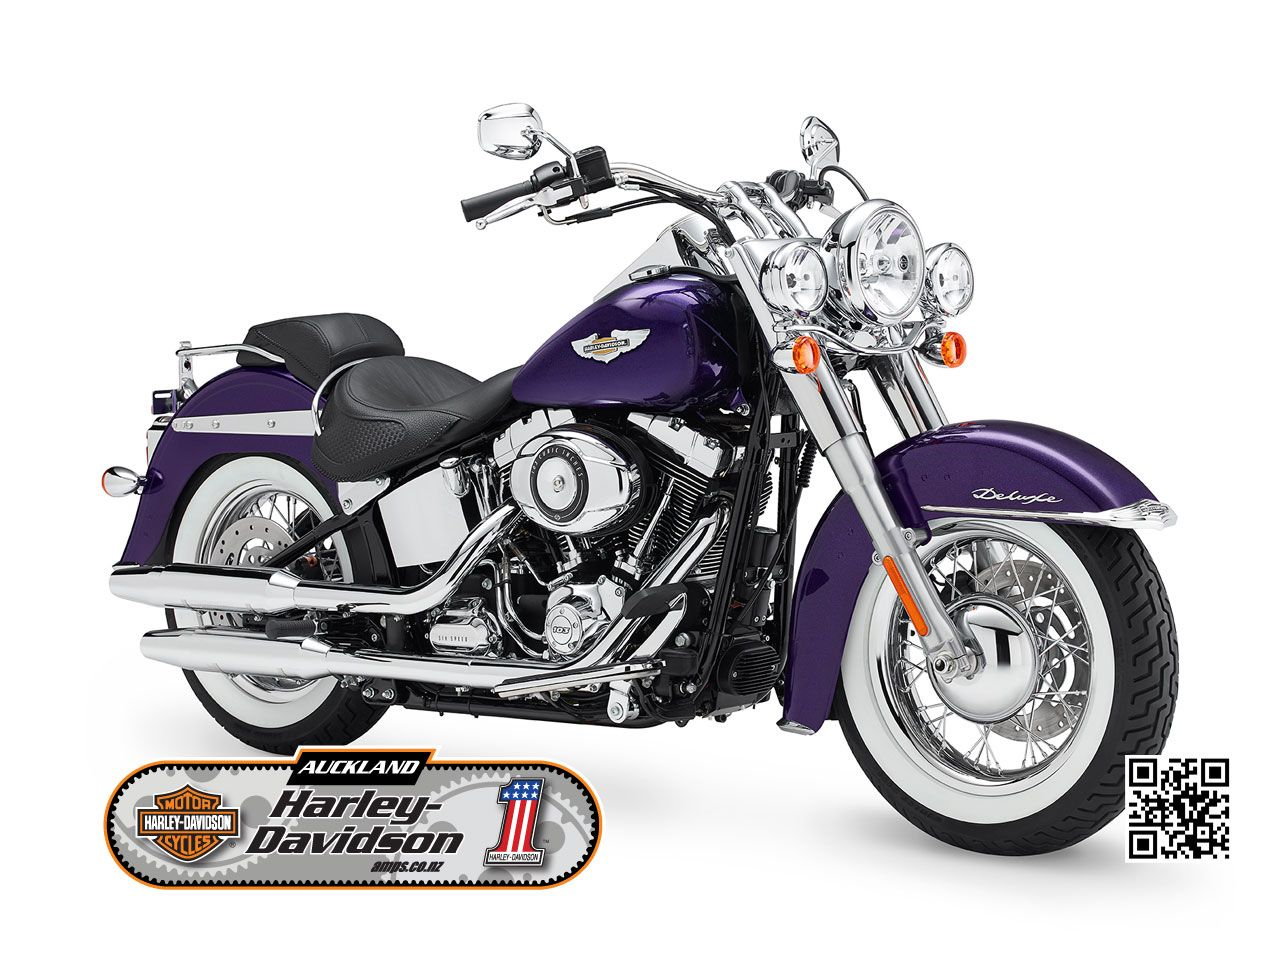 2014 HARLEY DAVIDSON Softail Deluxe in Various Available